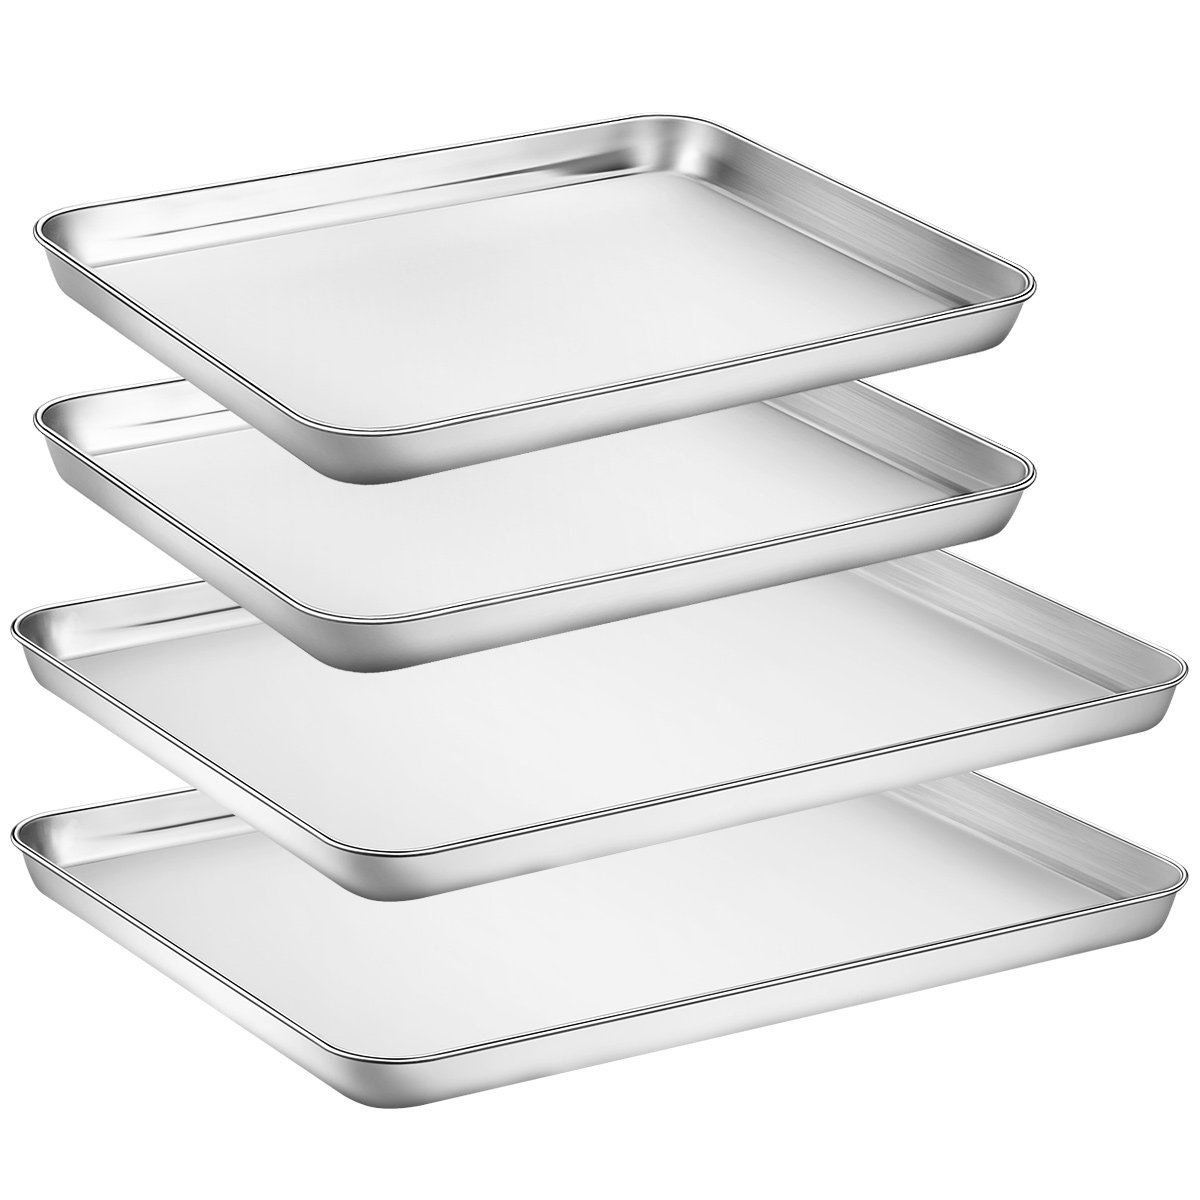 Large Baking Sheets Sets, HKJ Chef Baking Pans For Oven & Stainless Steel Cookie Sheets 4 Pieces & Toaster Oven Tray Pans Non Toxic & Healthy,Superior Mirror & Easy Clean by HKJ Chef